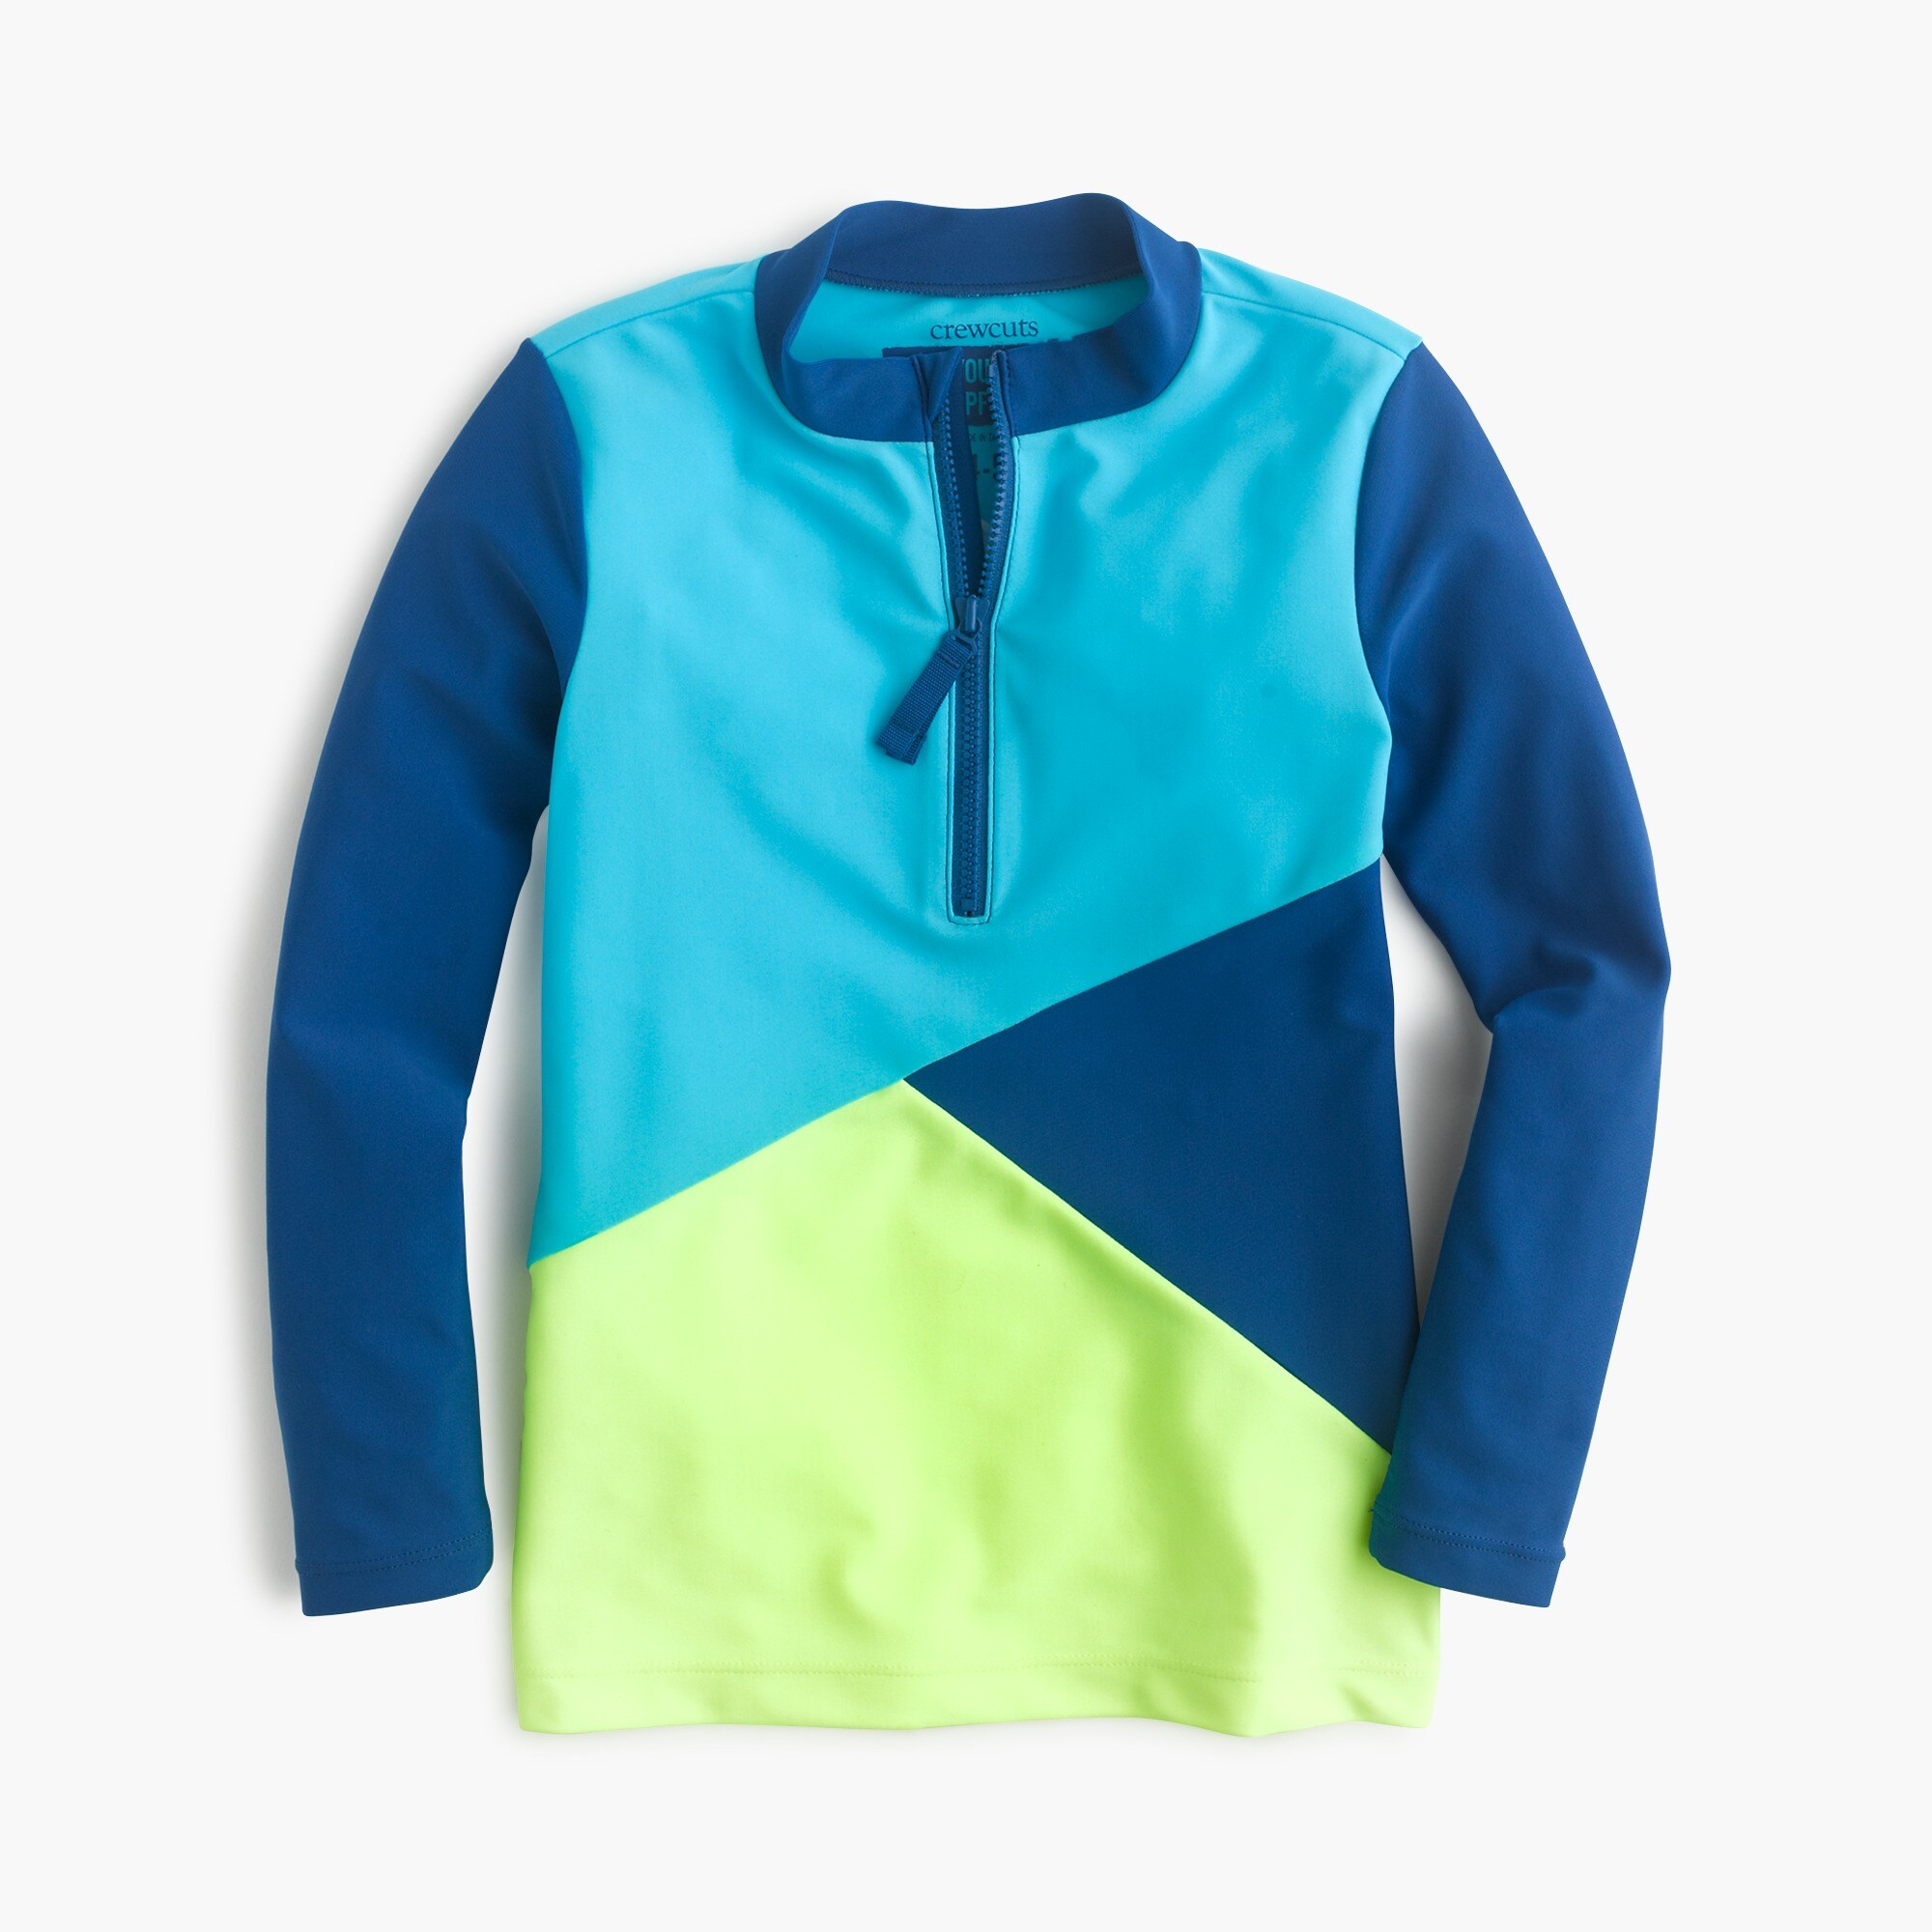 girls' colorblock rash guard : girl solids